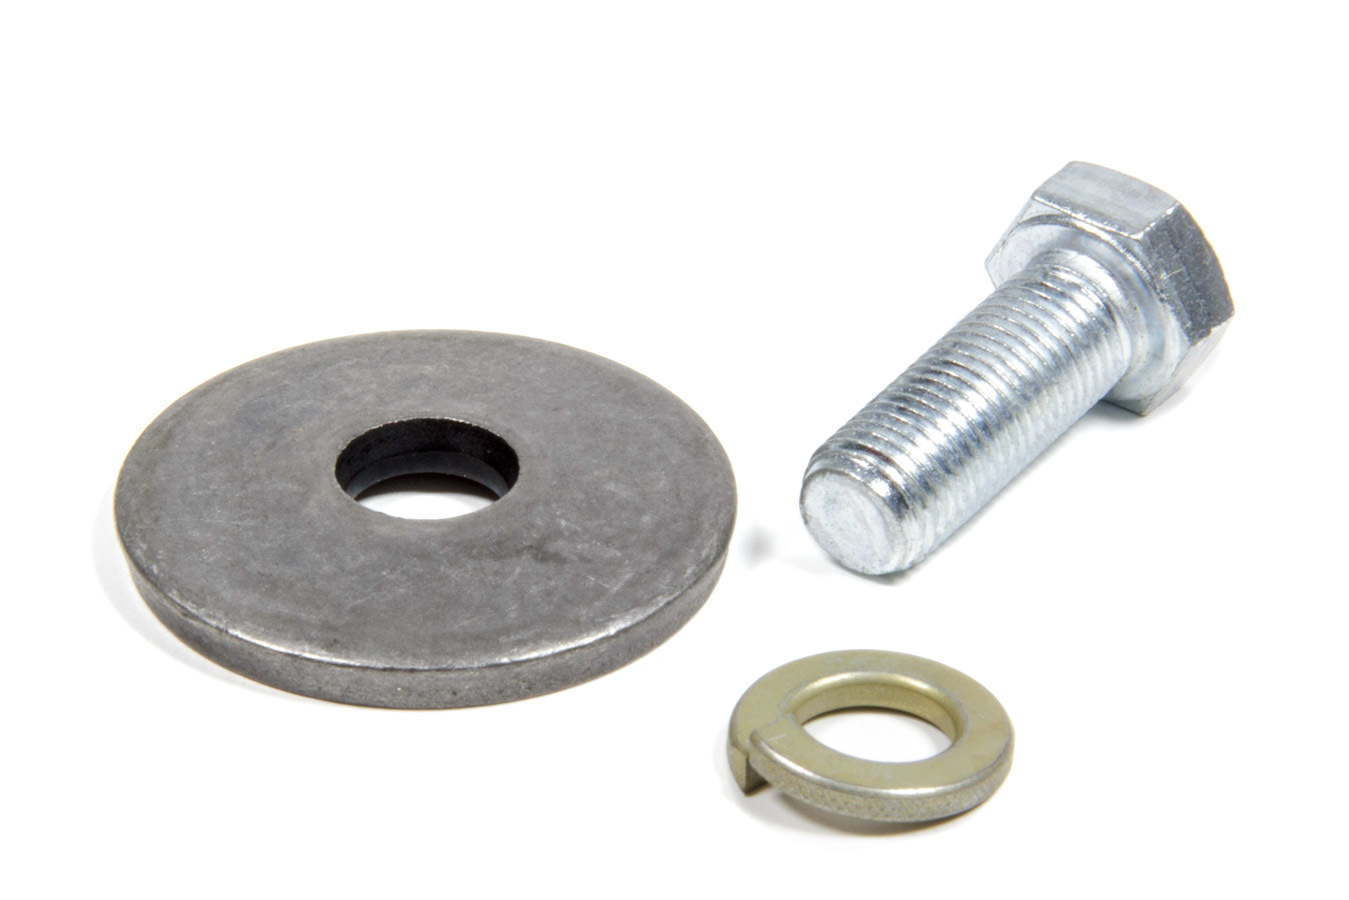 Frankland Racing Yoke Bolt and Washer